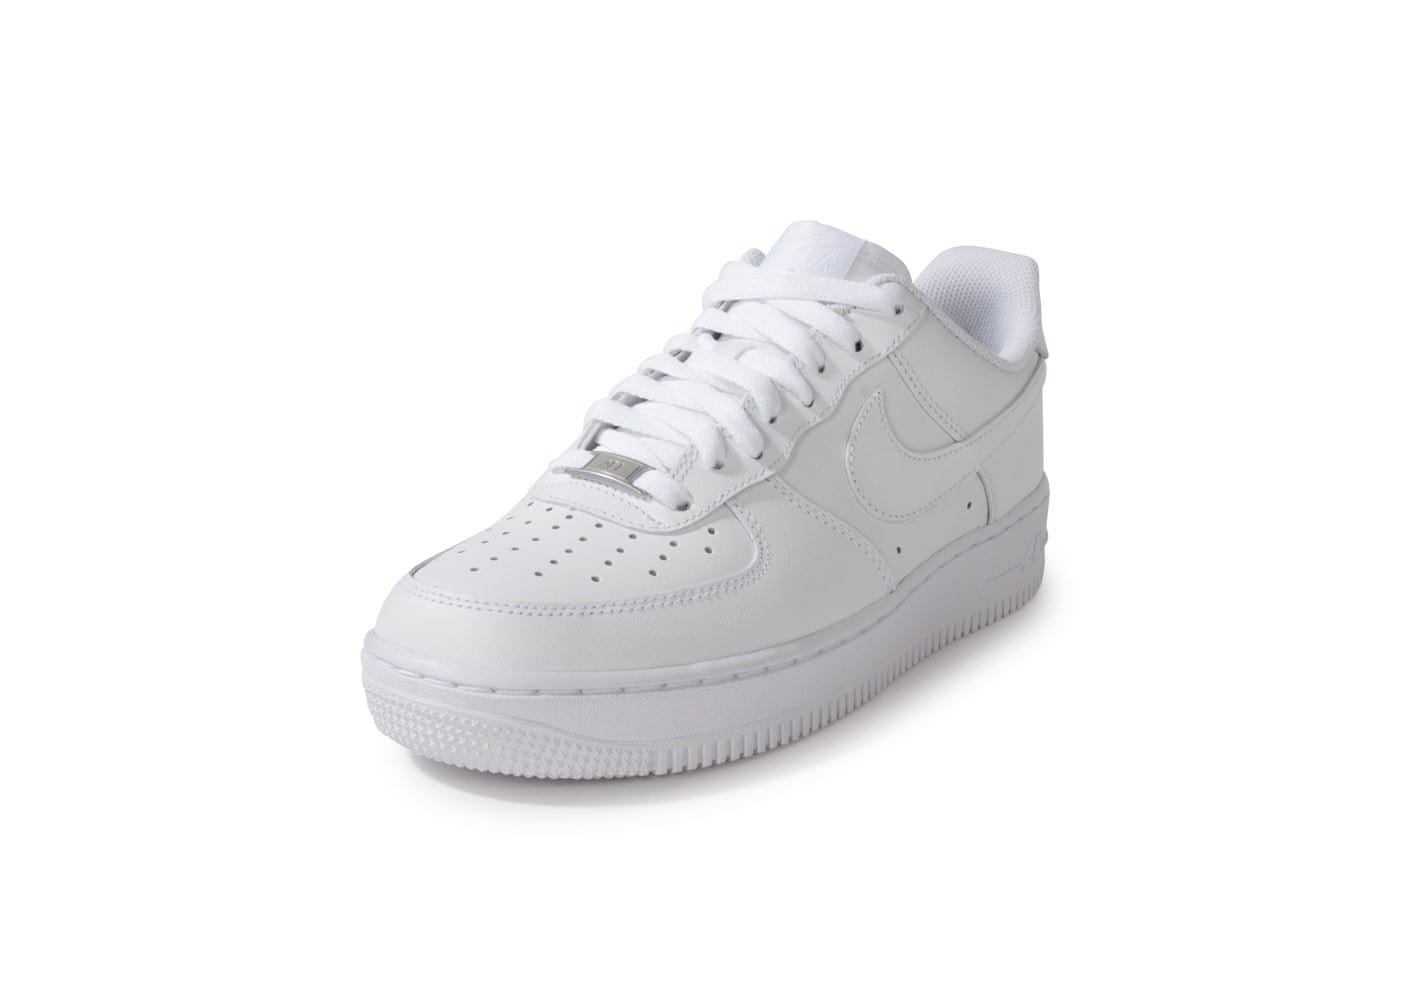 Nike Force Junior Blanche Lv8 Low Air 1 chaussures dxQCthsBor